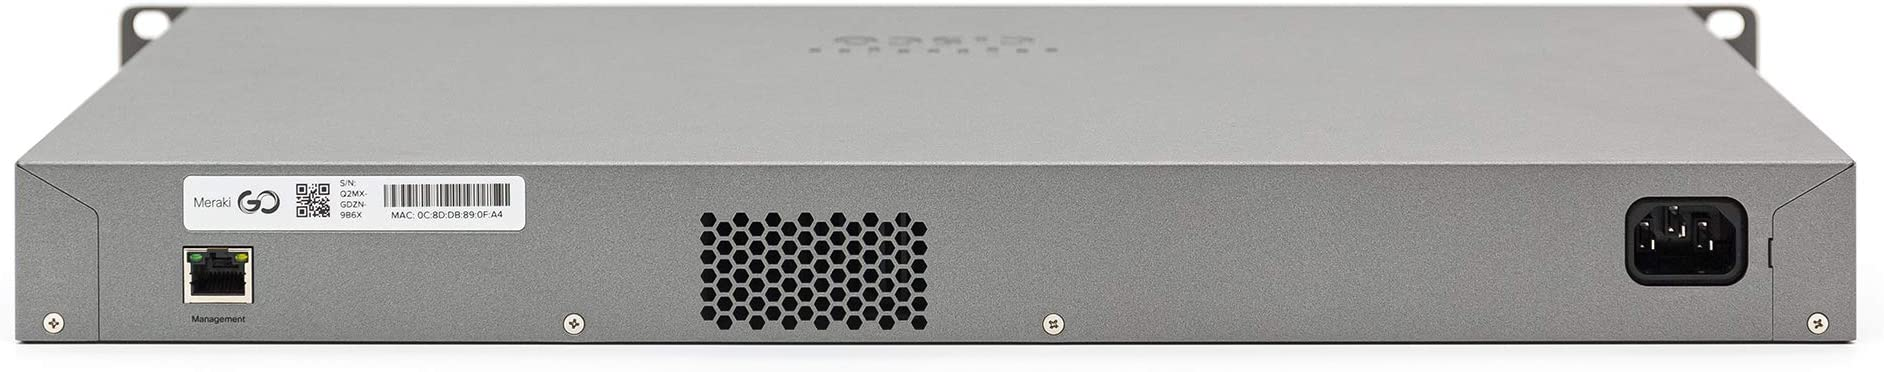 Power Over Ethernet | GS110-24P-HW-US Meraki Go by Cisco Cloud Managed 24 Port PoE Network Switch